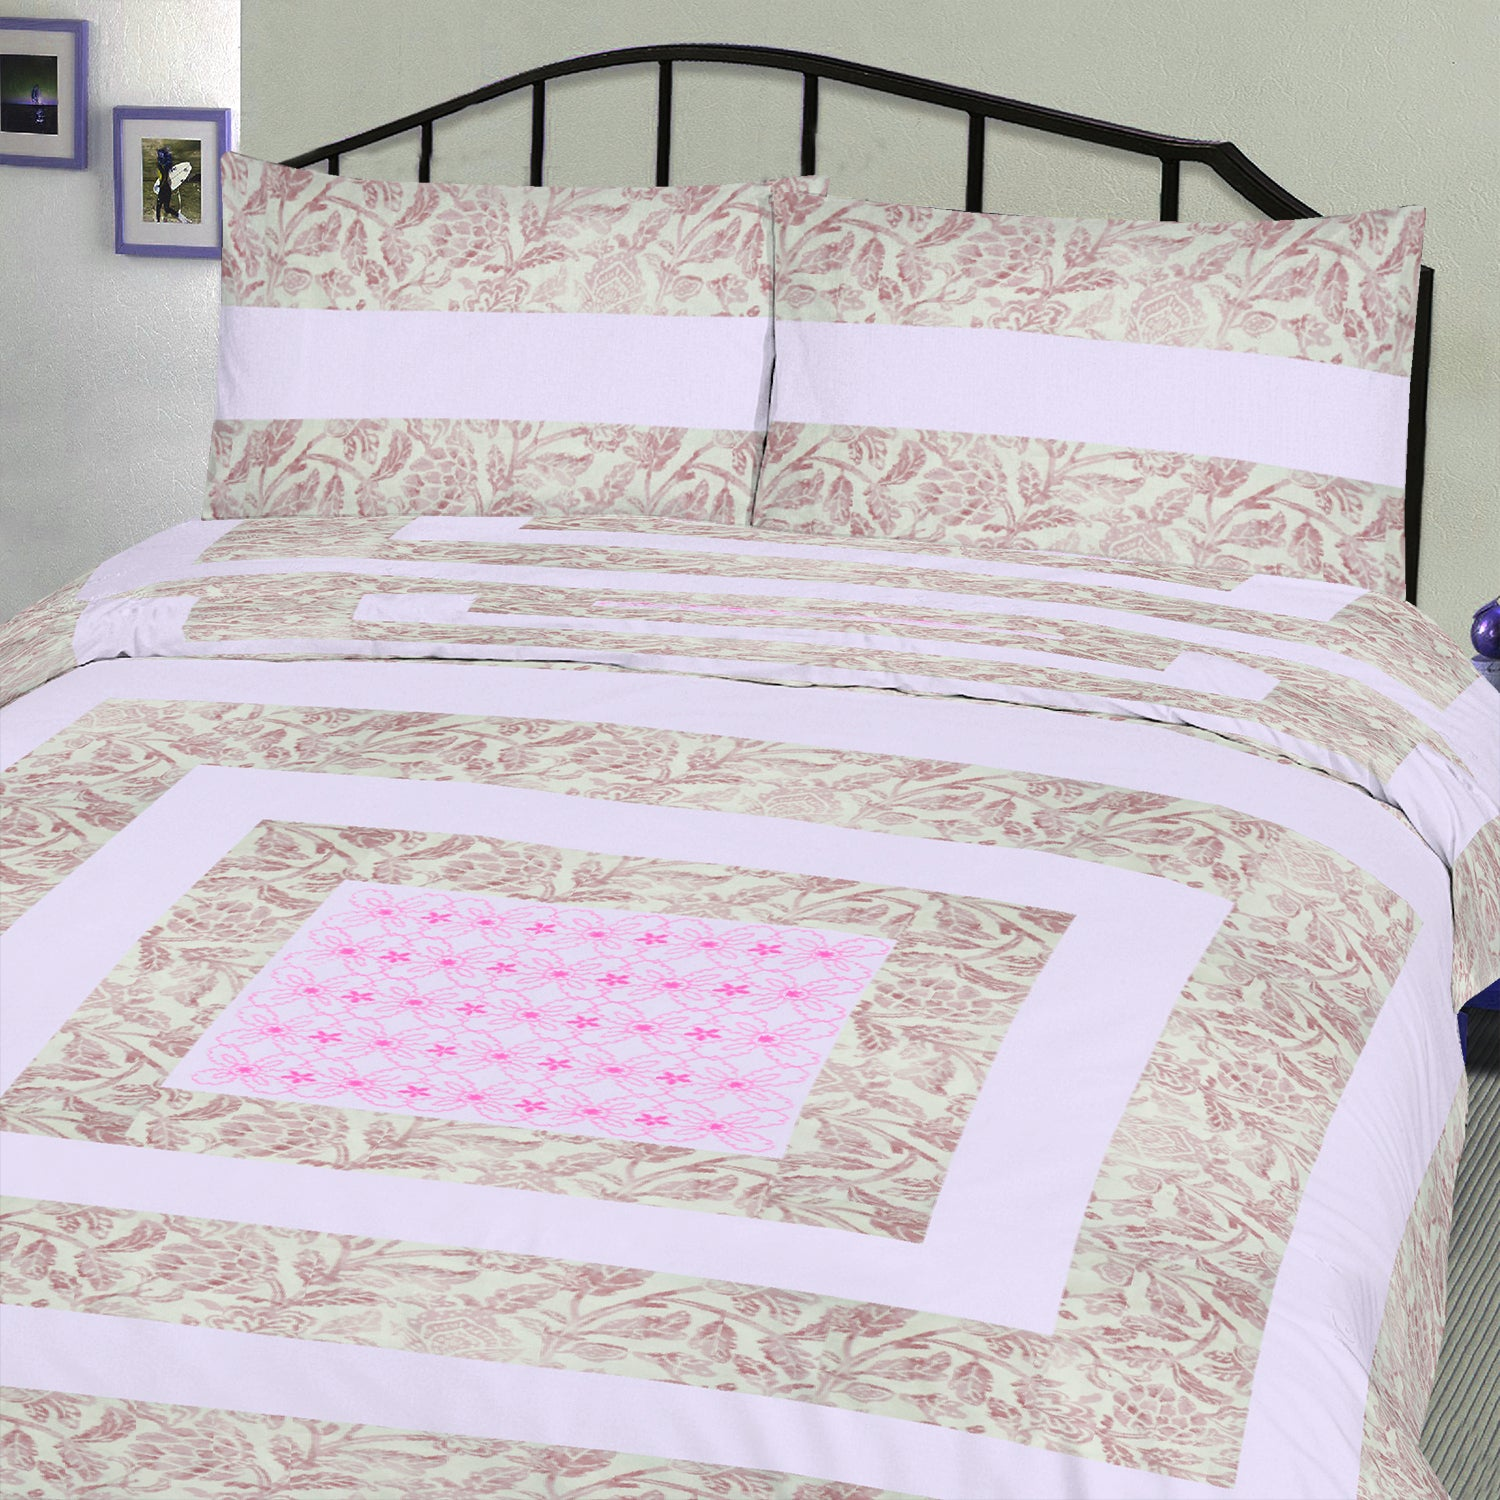 brandsego - Premium Quality Cotton Sutton Double Bed Sheet & Pillow Set-BE9174